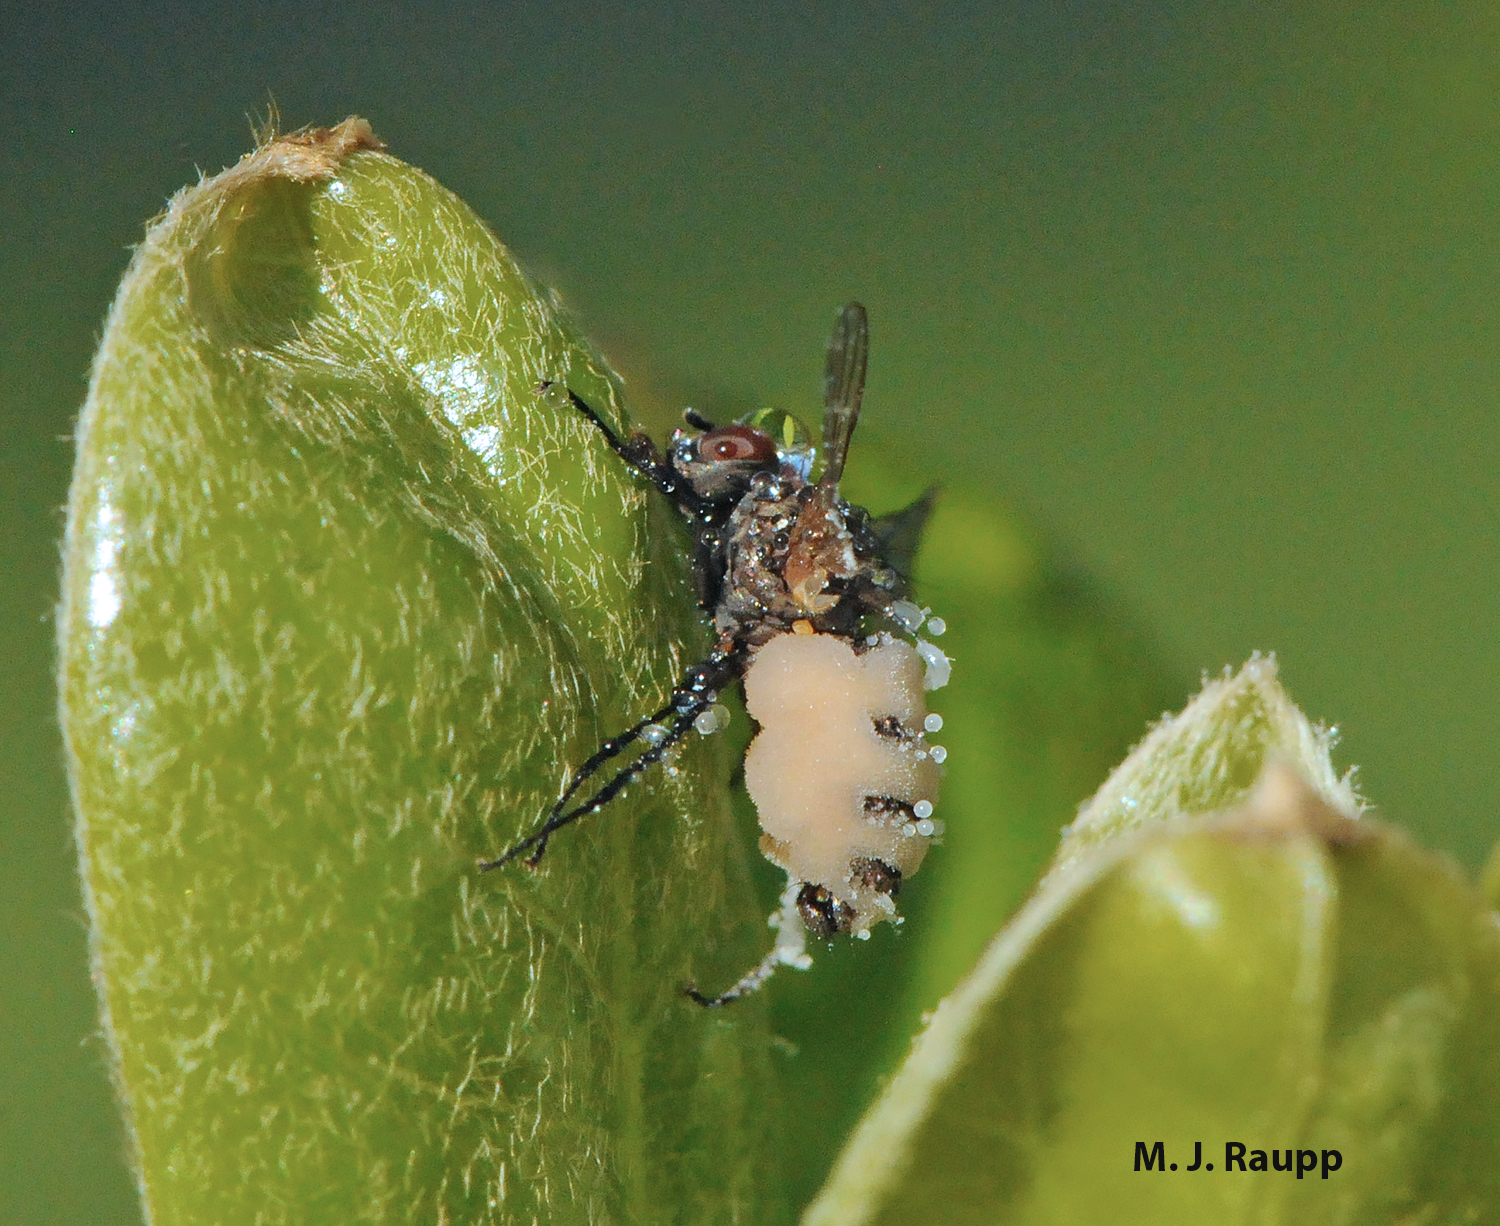 Fungal spores are bustin' out all over the place on this seedcorn maggot fly.